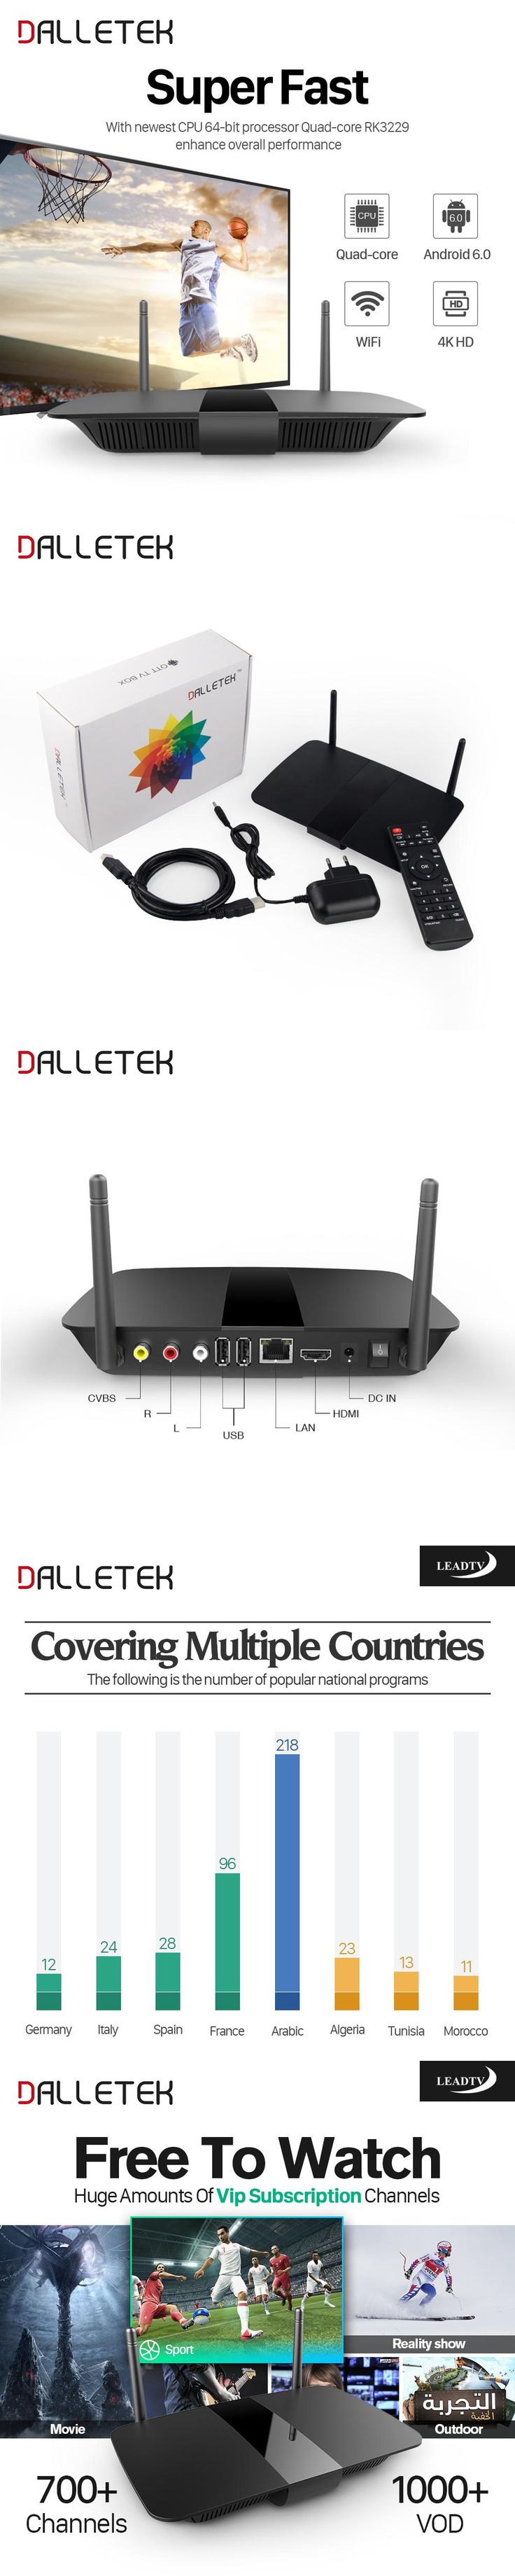 Dalletektv Smart Android TV Box ARM Cortex A7 Quad Core 1G 8G H.265 700+ Arabic French IPTV Italy Spain Germany Subscription